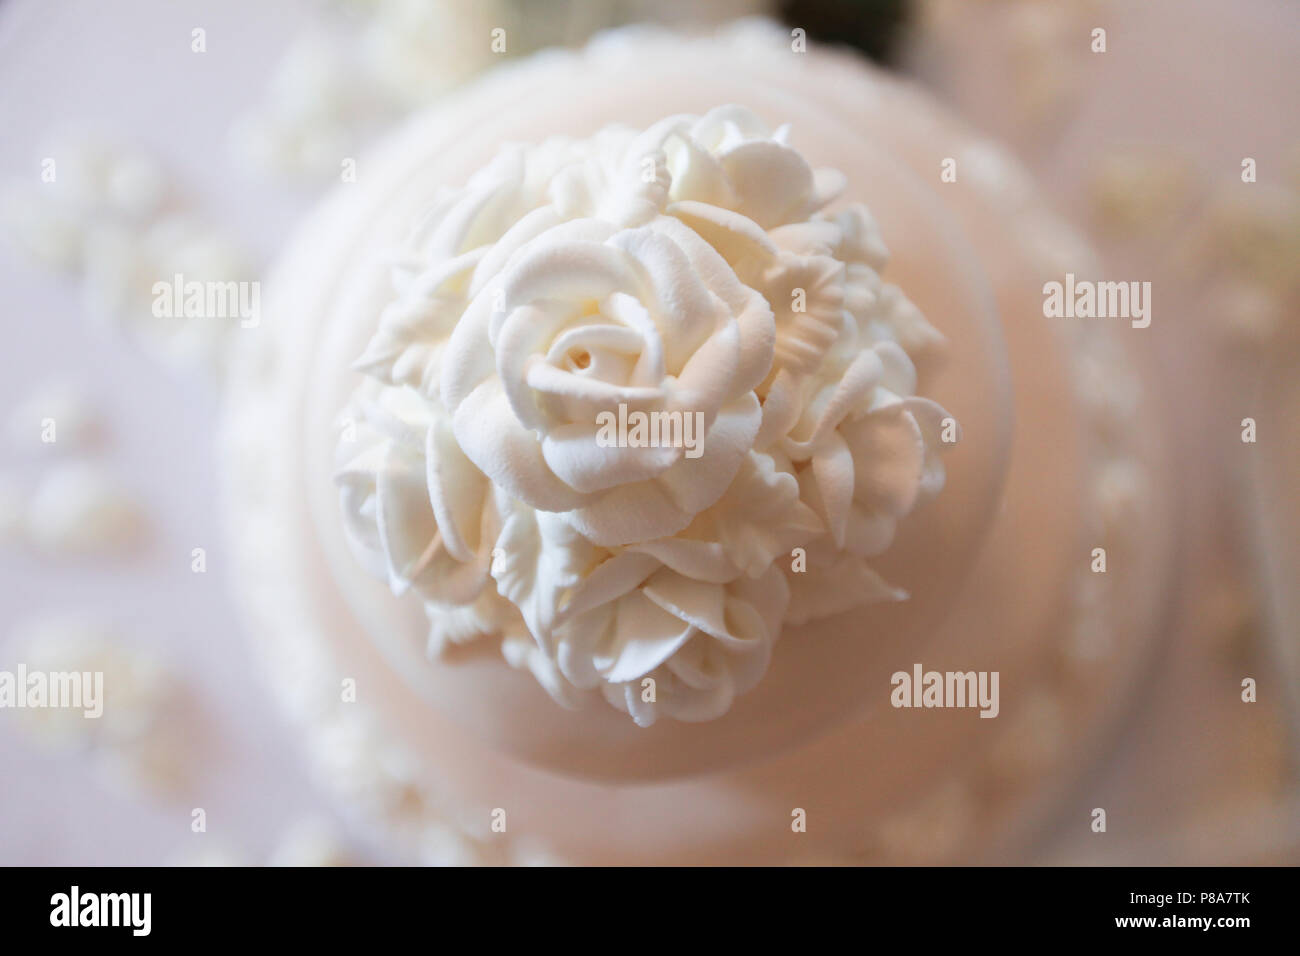 High-angle close-up shot of the top tier of a beautiful white wedding cake with detailed white roses as decoration. - Stock Image